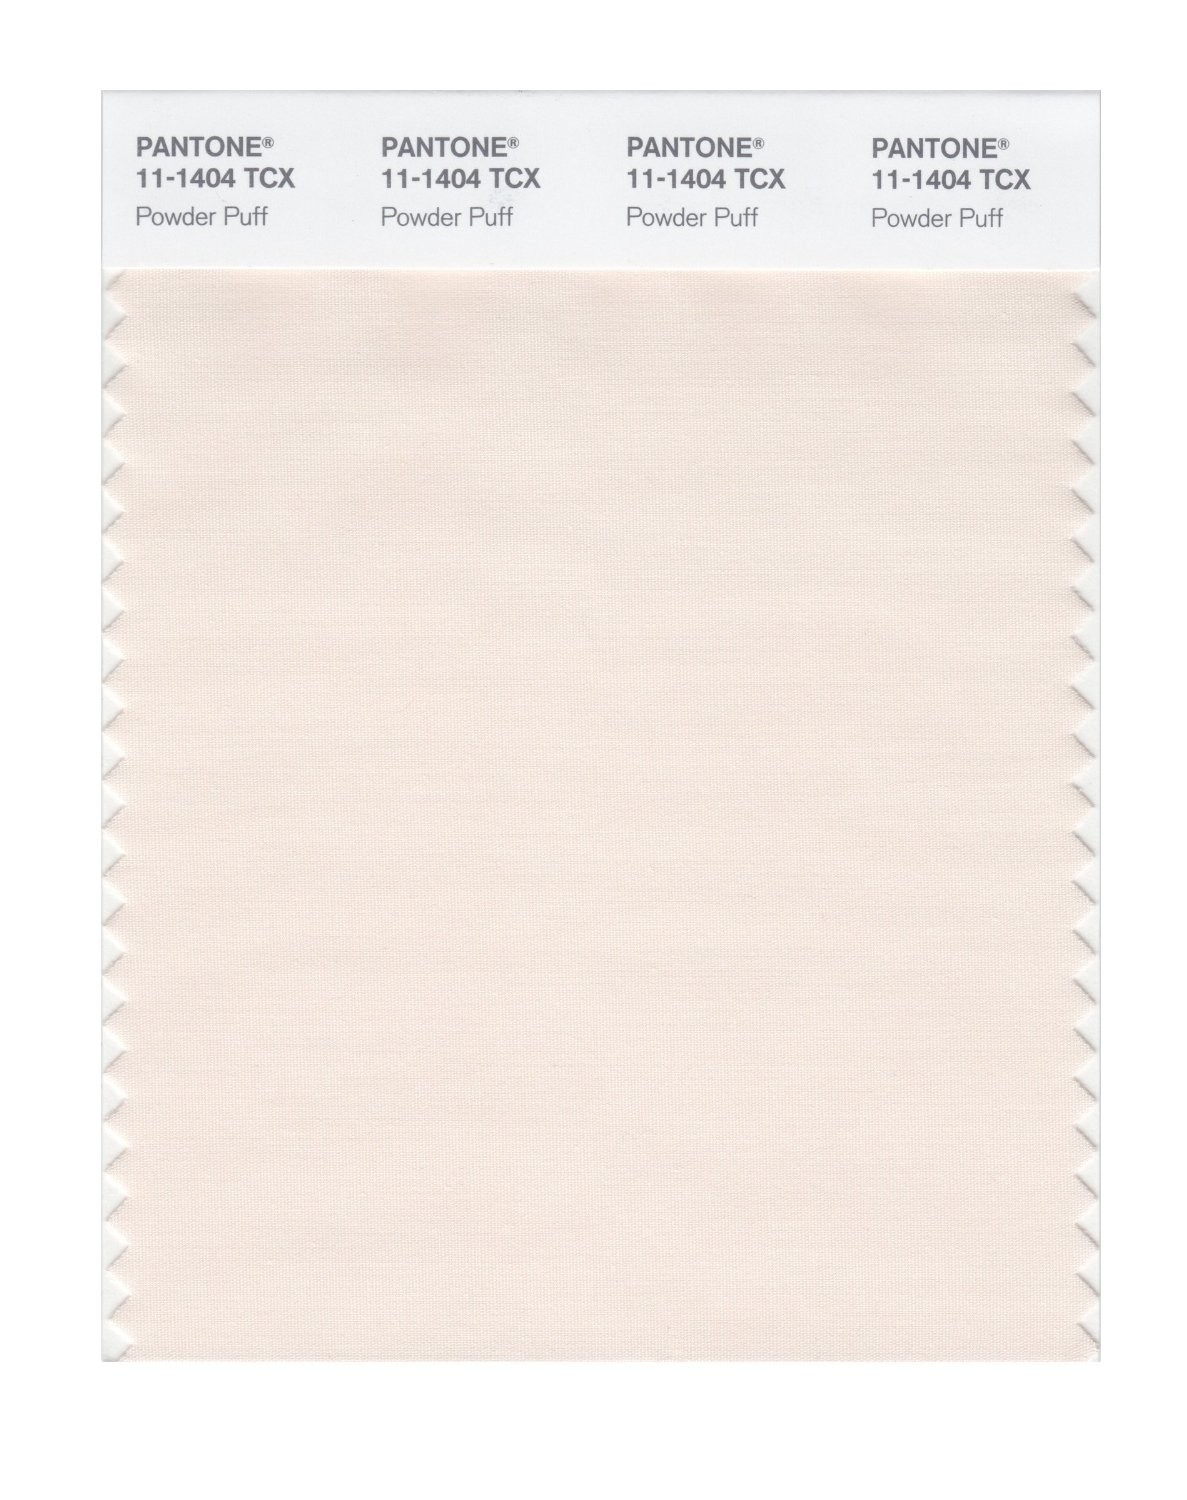 Pantone 11-1404 TCX Swatch Card Powder Puff